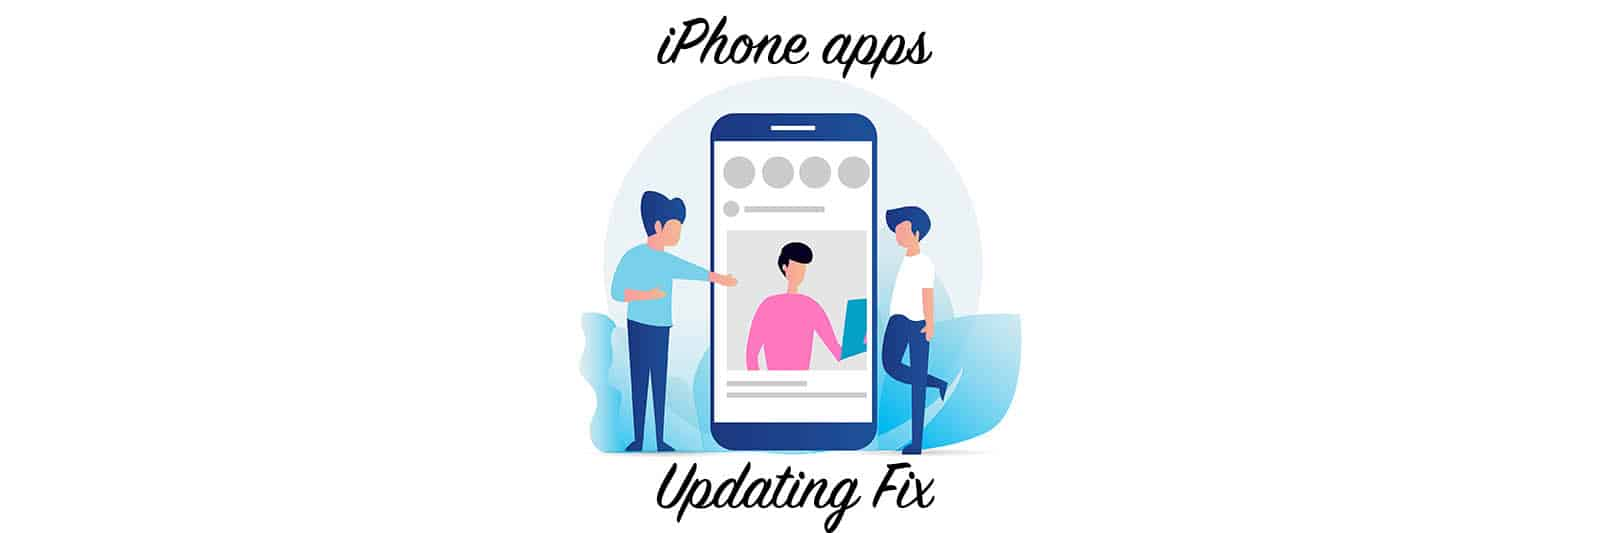 iphone-apps-updating-fix